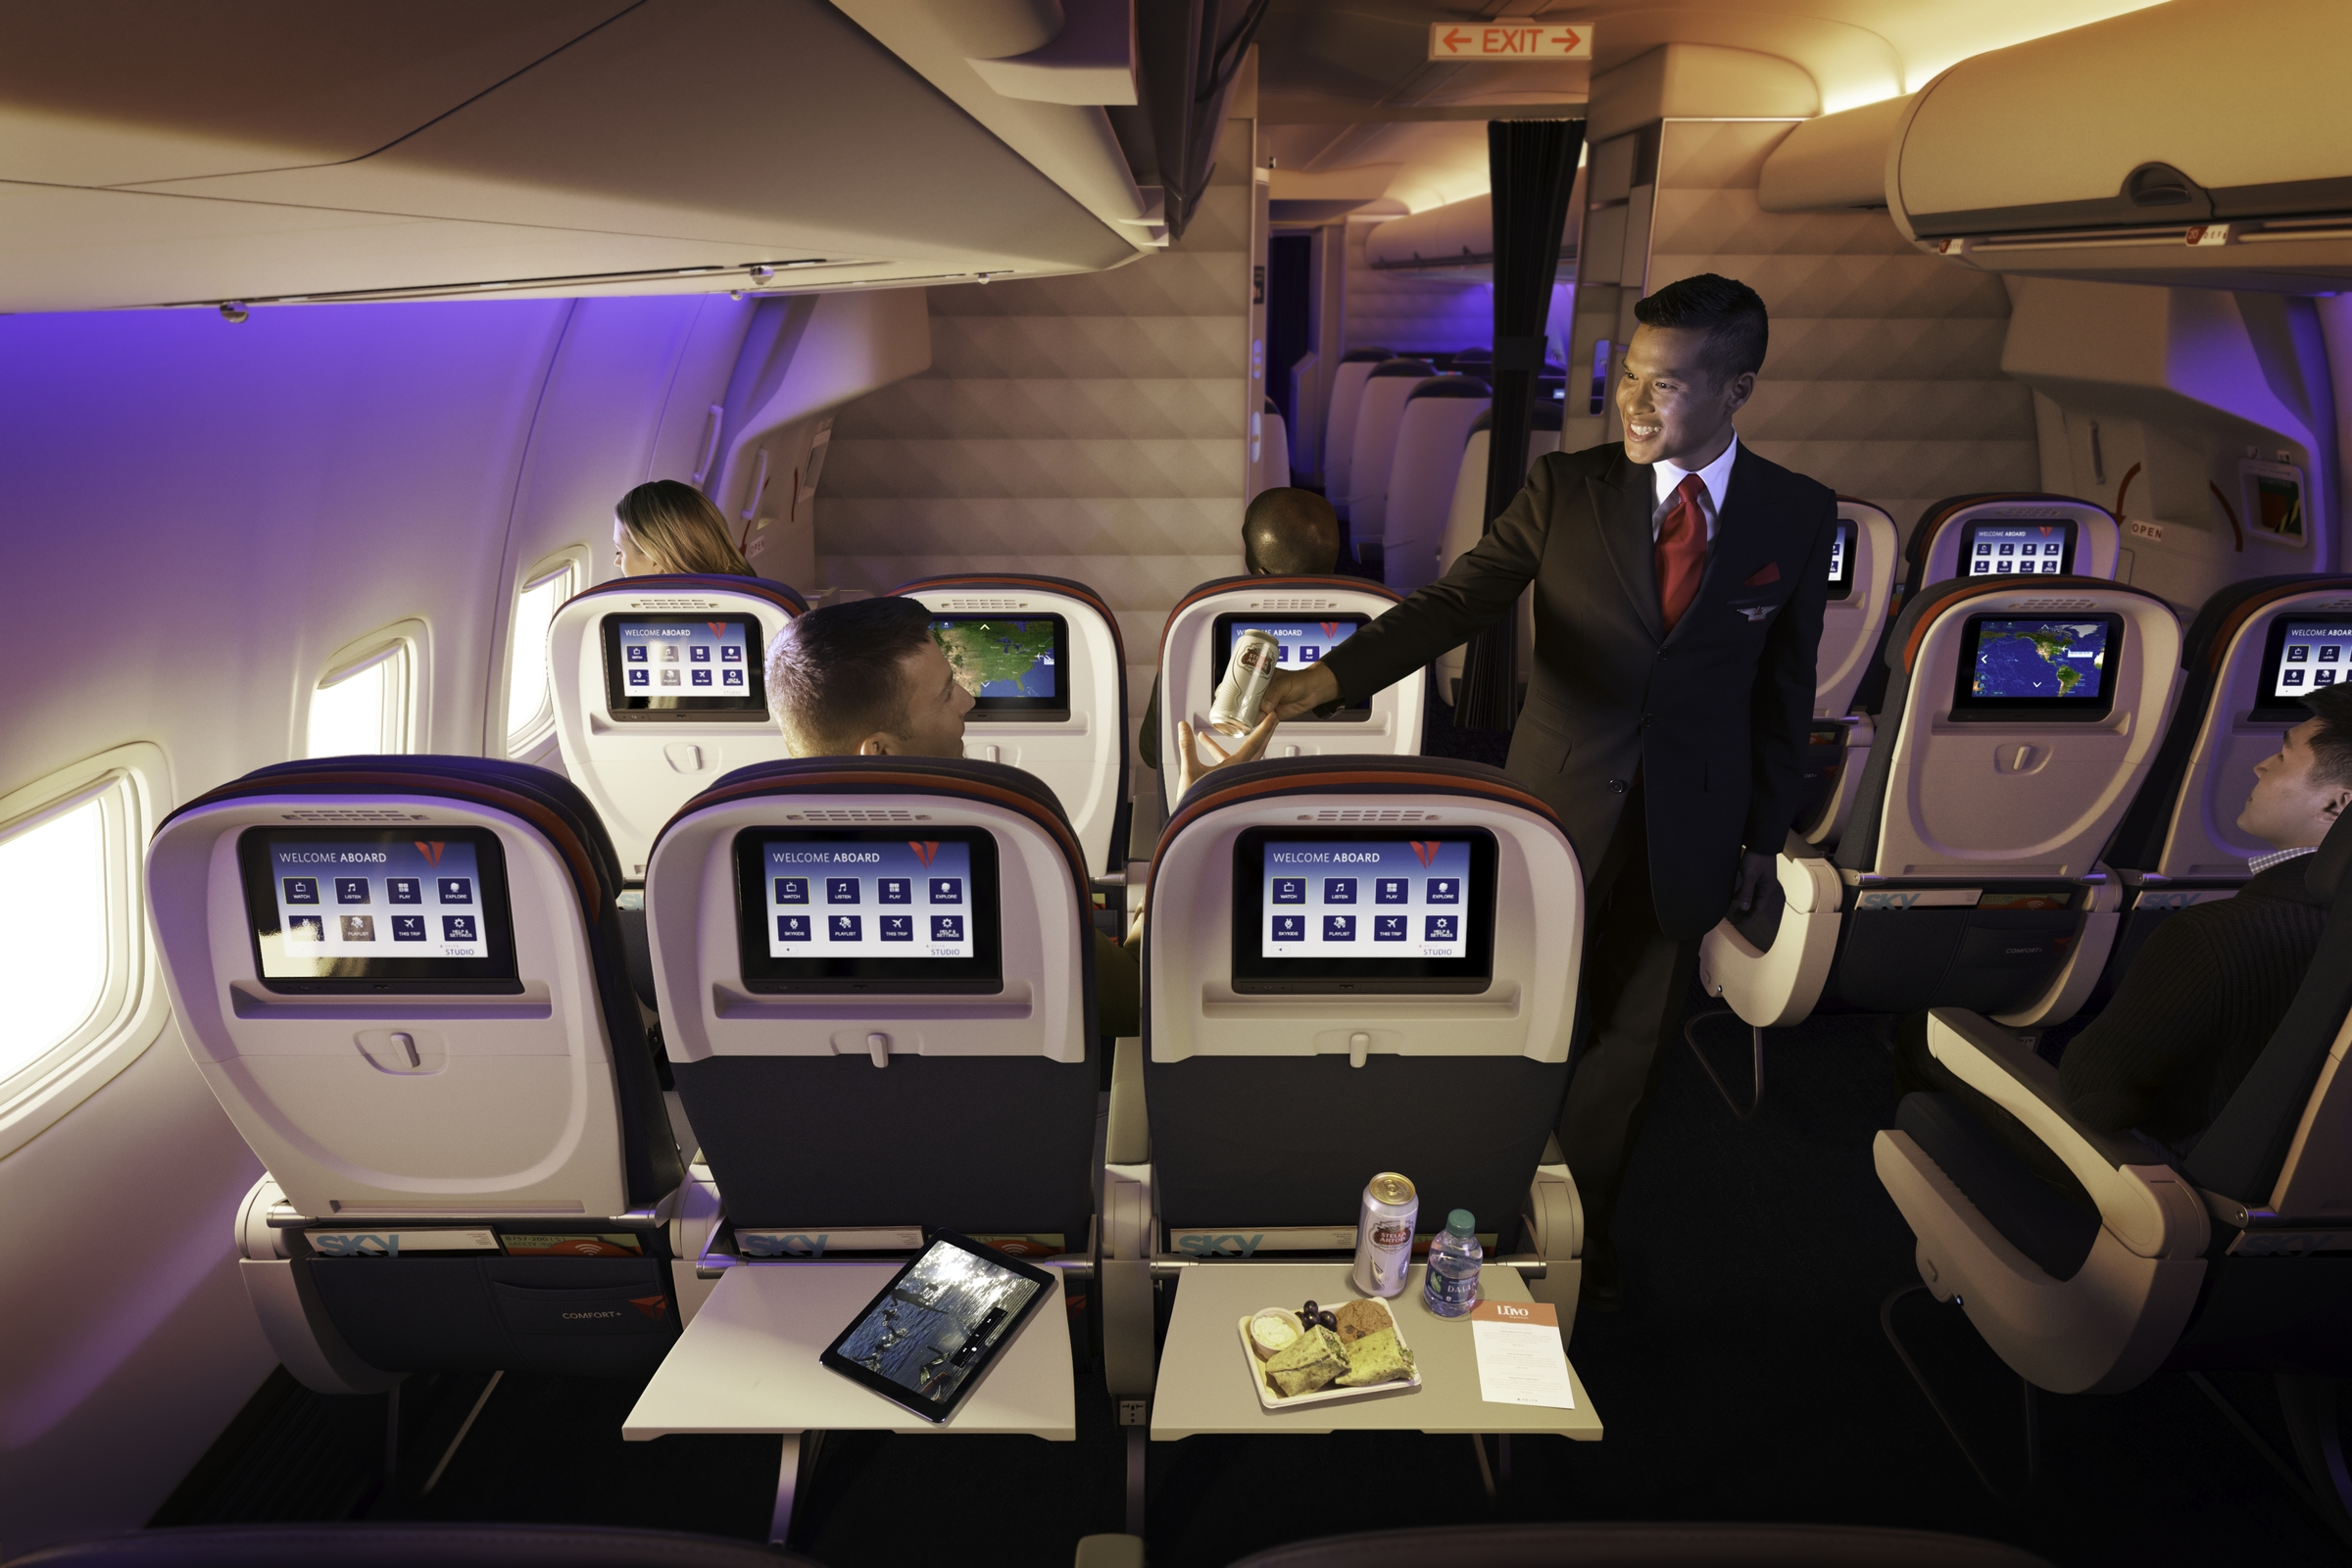 Delta Comfort+ now available as fare for domestic flights